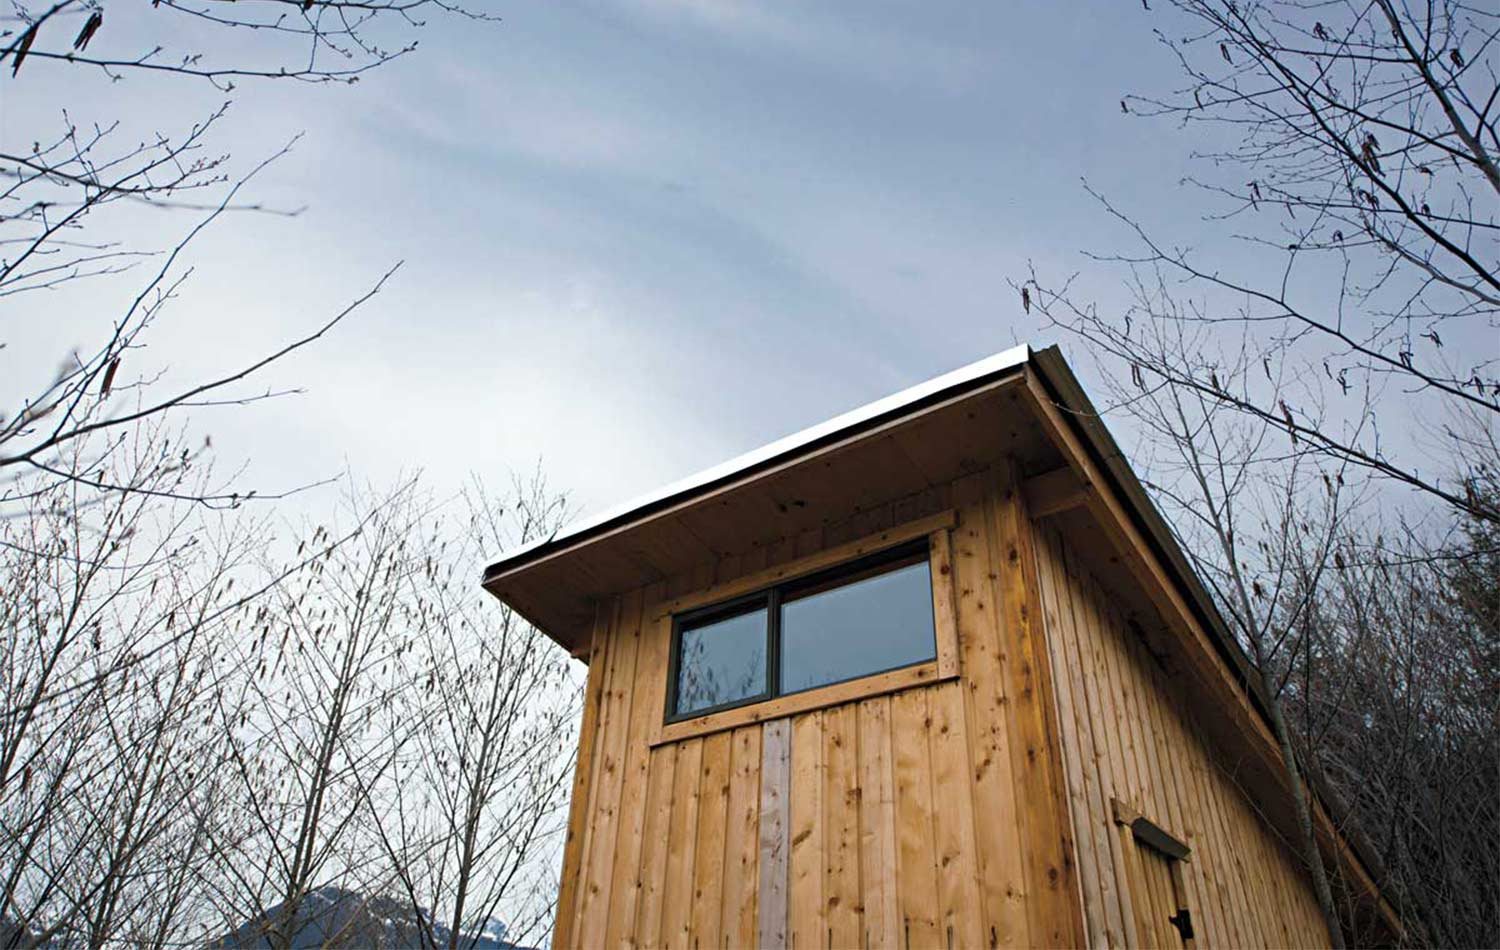 Exterior of Tiny home.